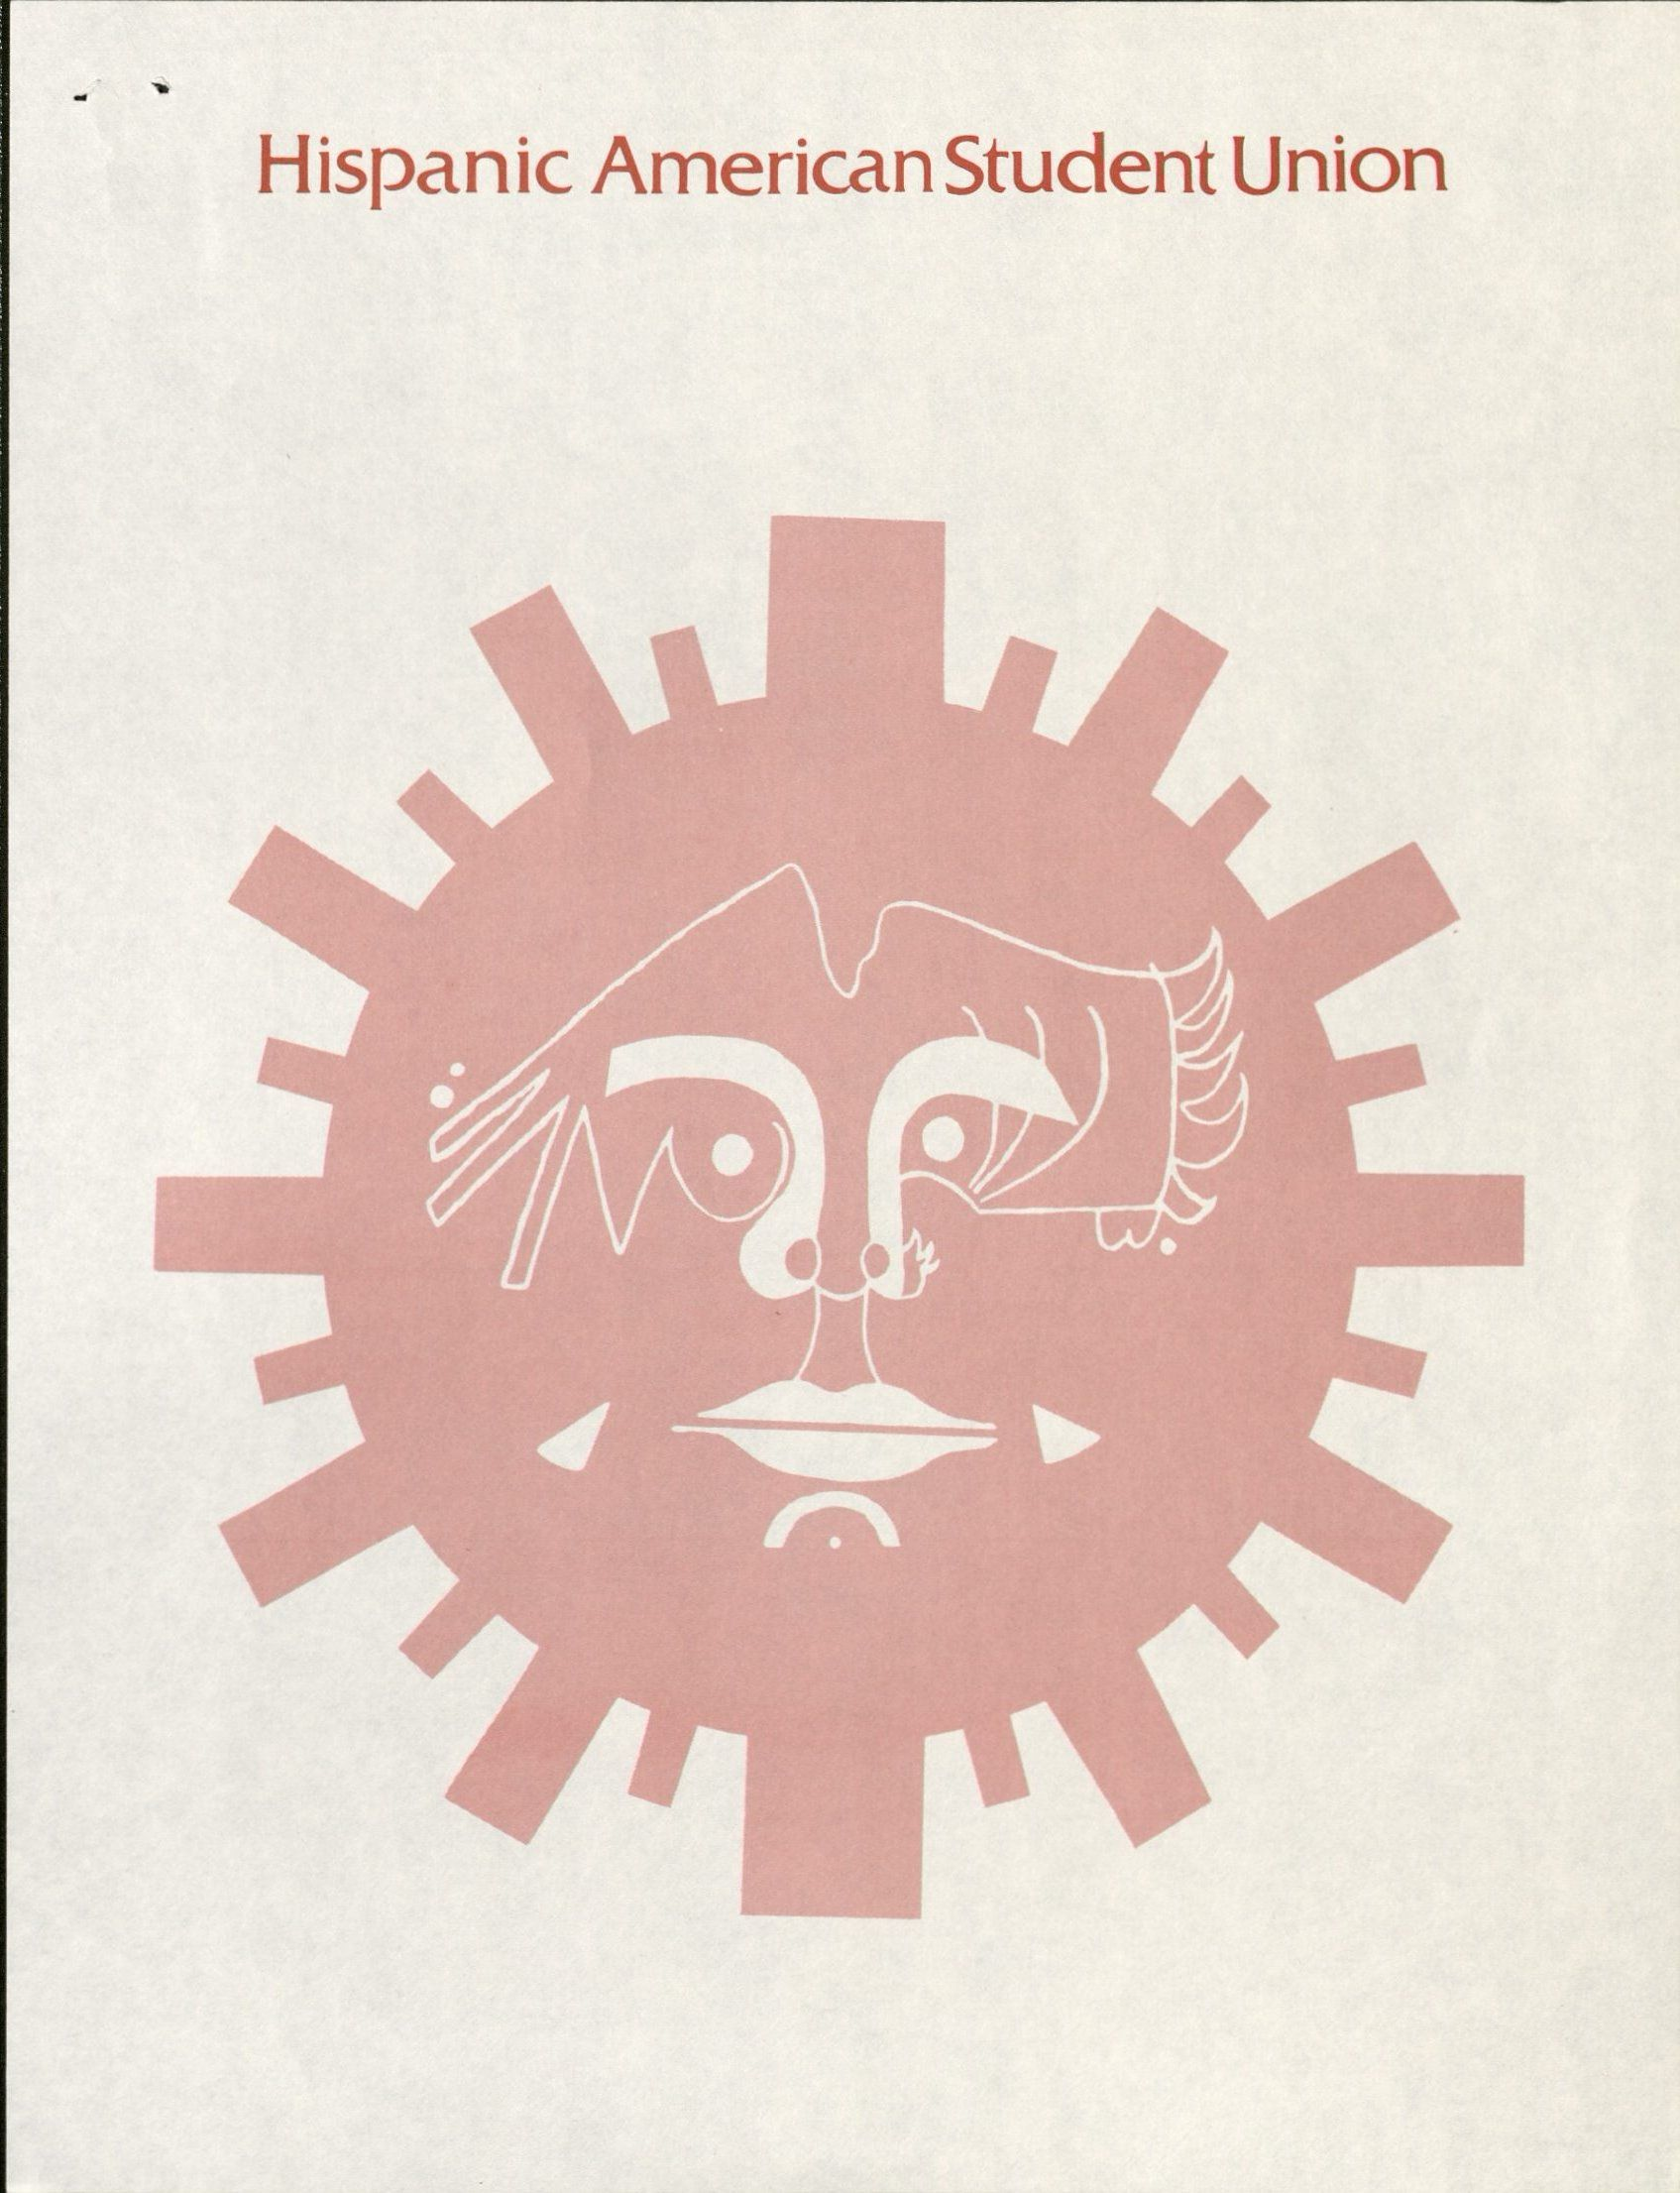 HASU poster, date unknown, featuring a logo in the shape of a red sun with a face.RS 22/03/00/01